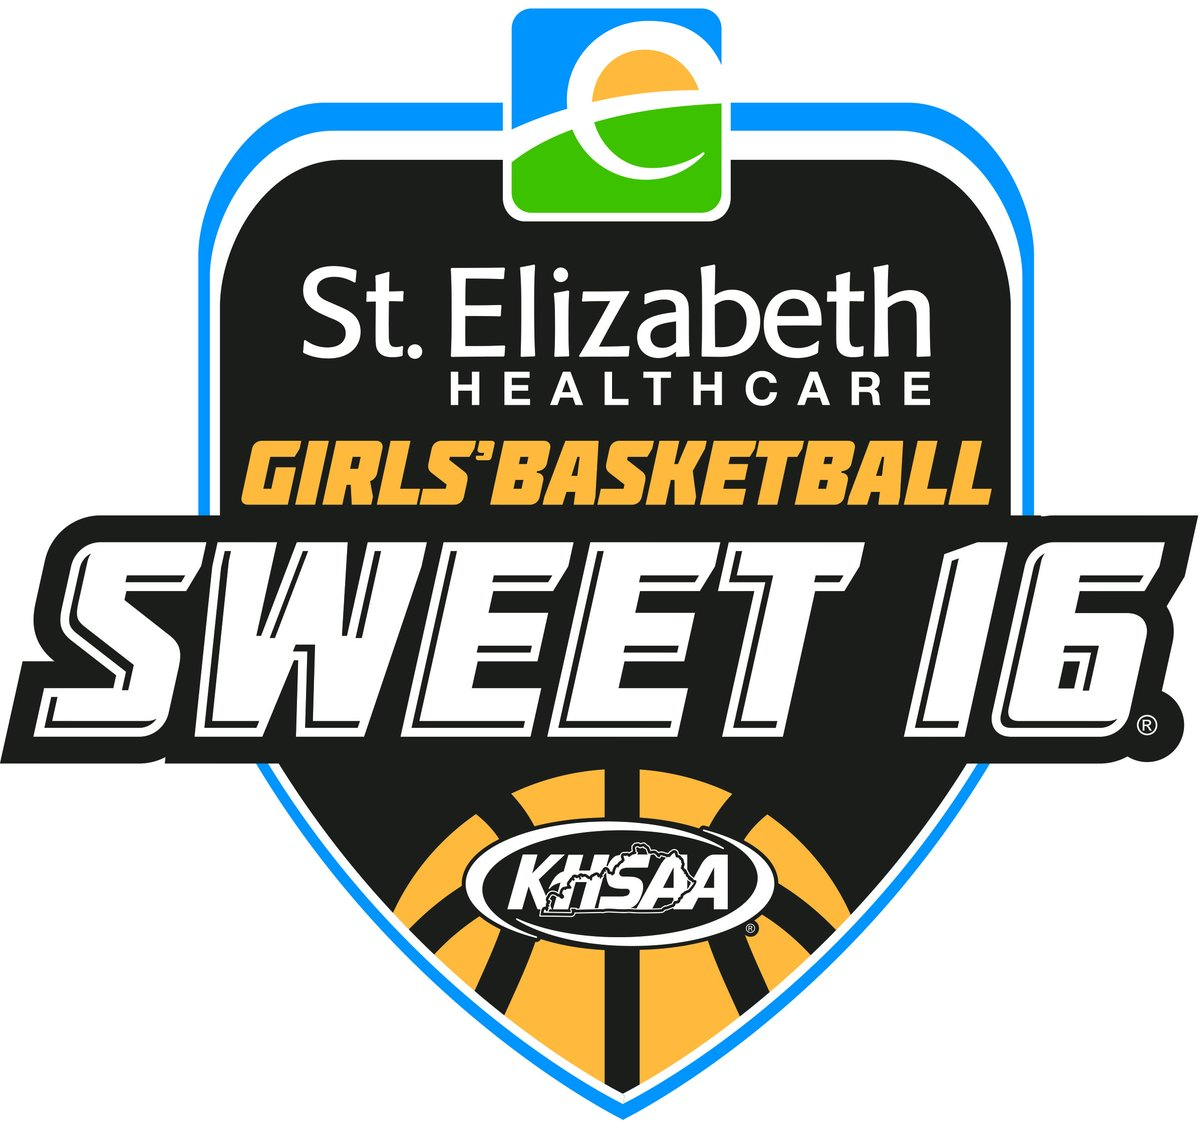 Girls Sweet 16 begins today